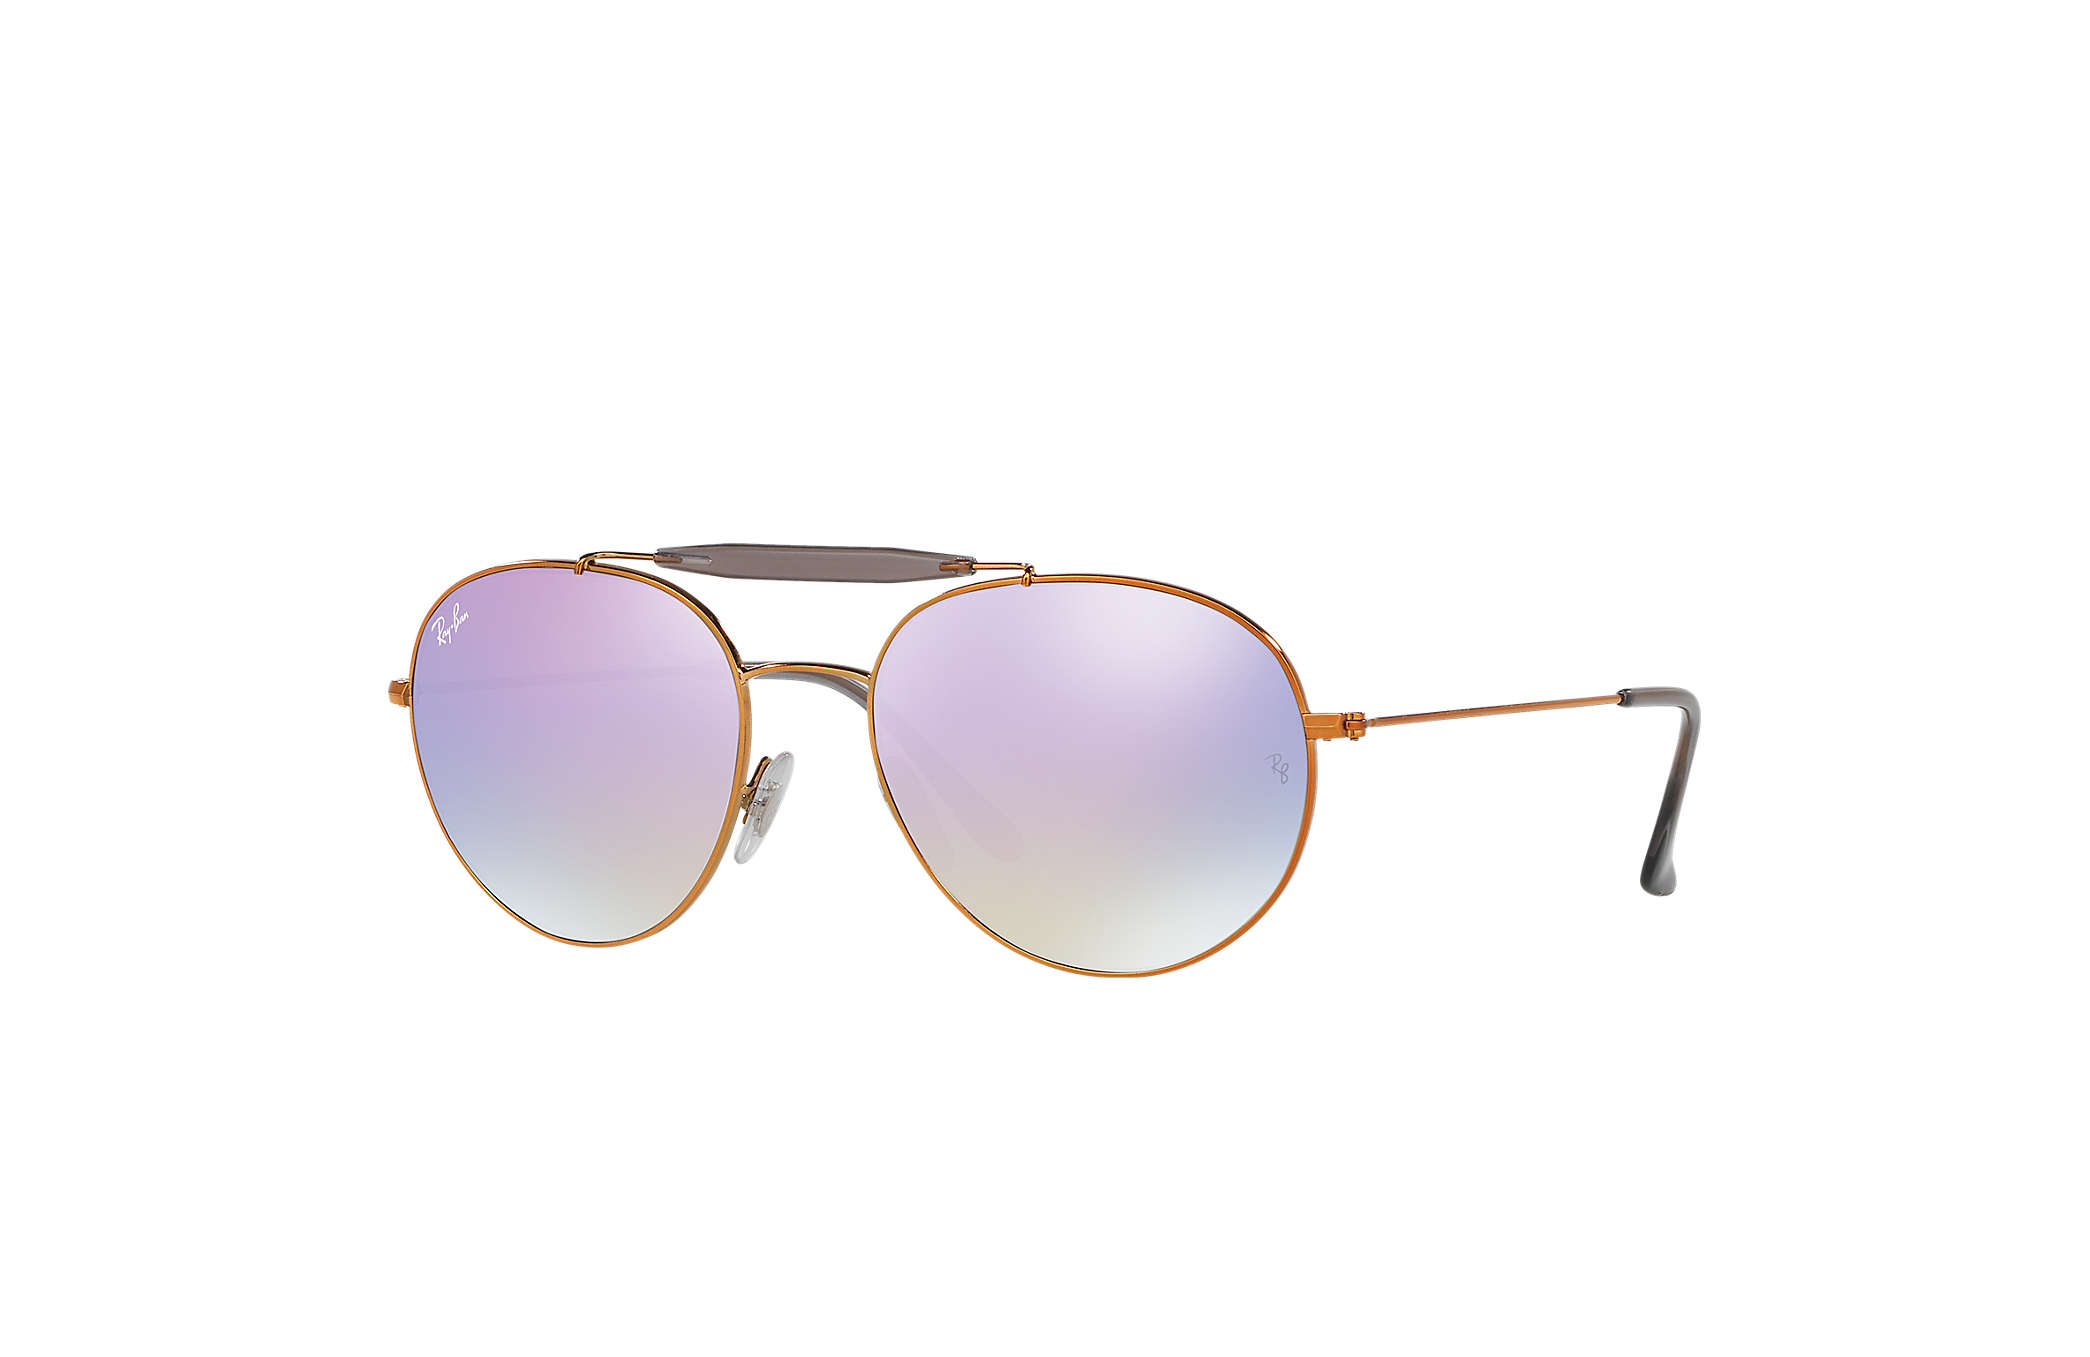 ff264456f6 Ray-Ban RB3540 Bronze-Copper - Metal - Lilac Lenses - 0RB3540198 ...